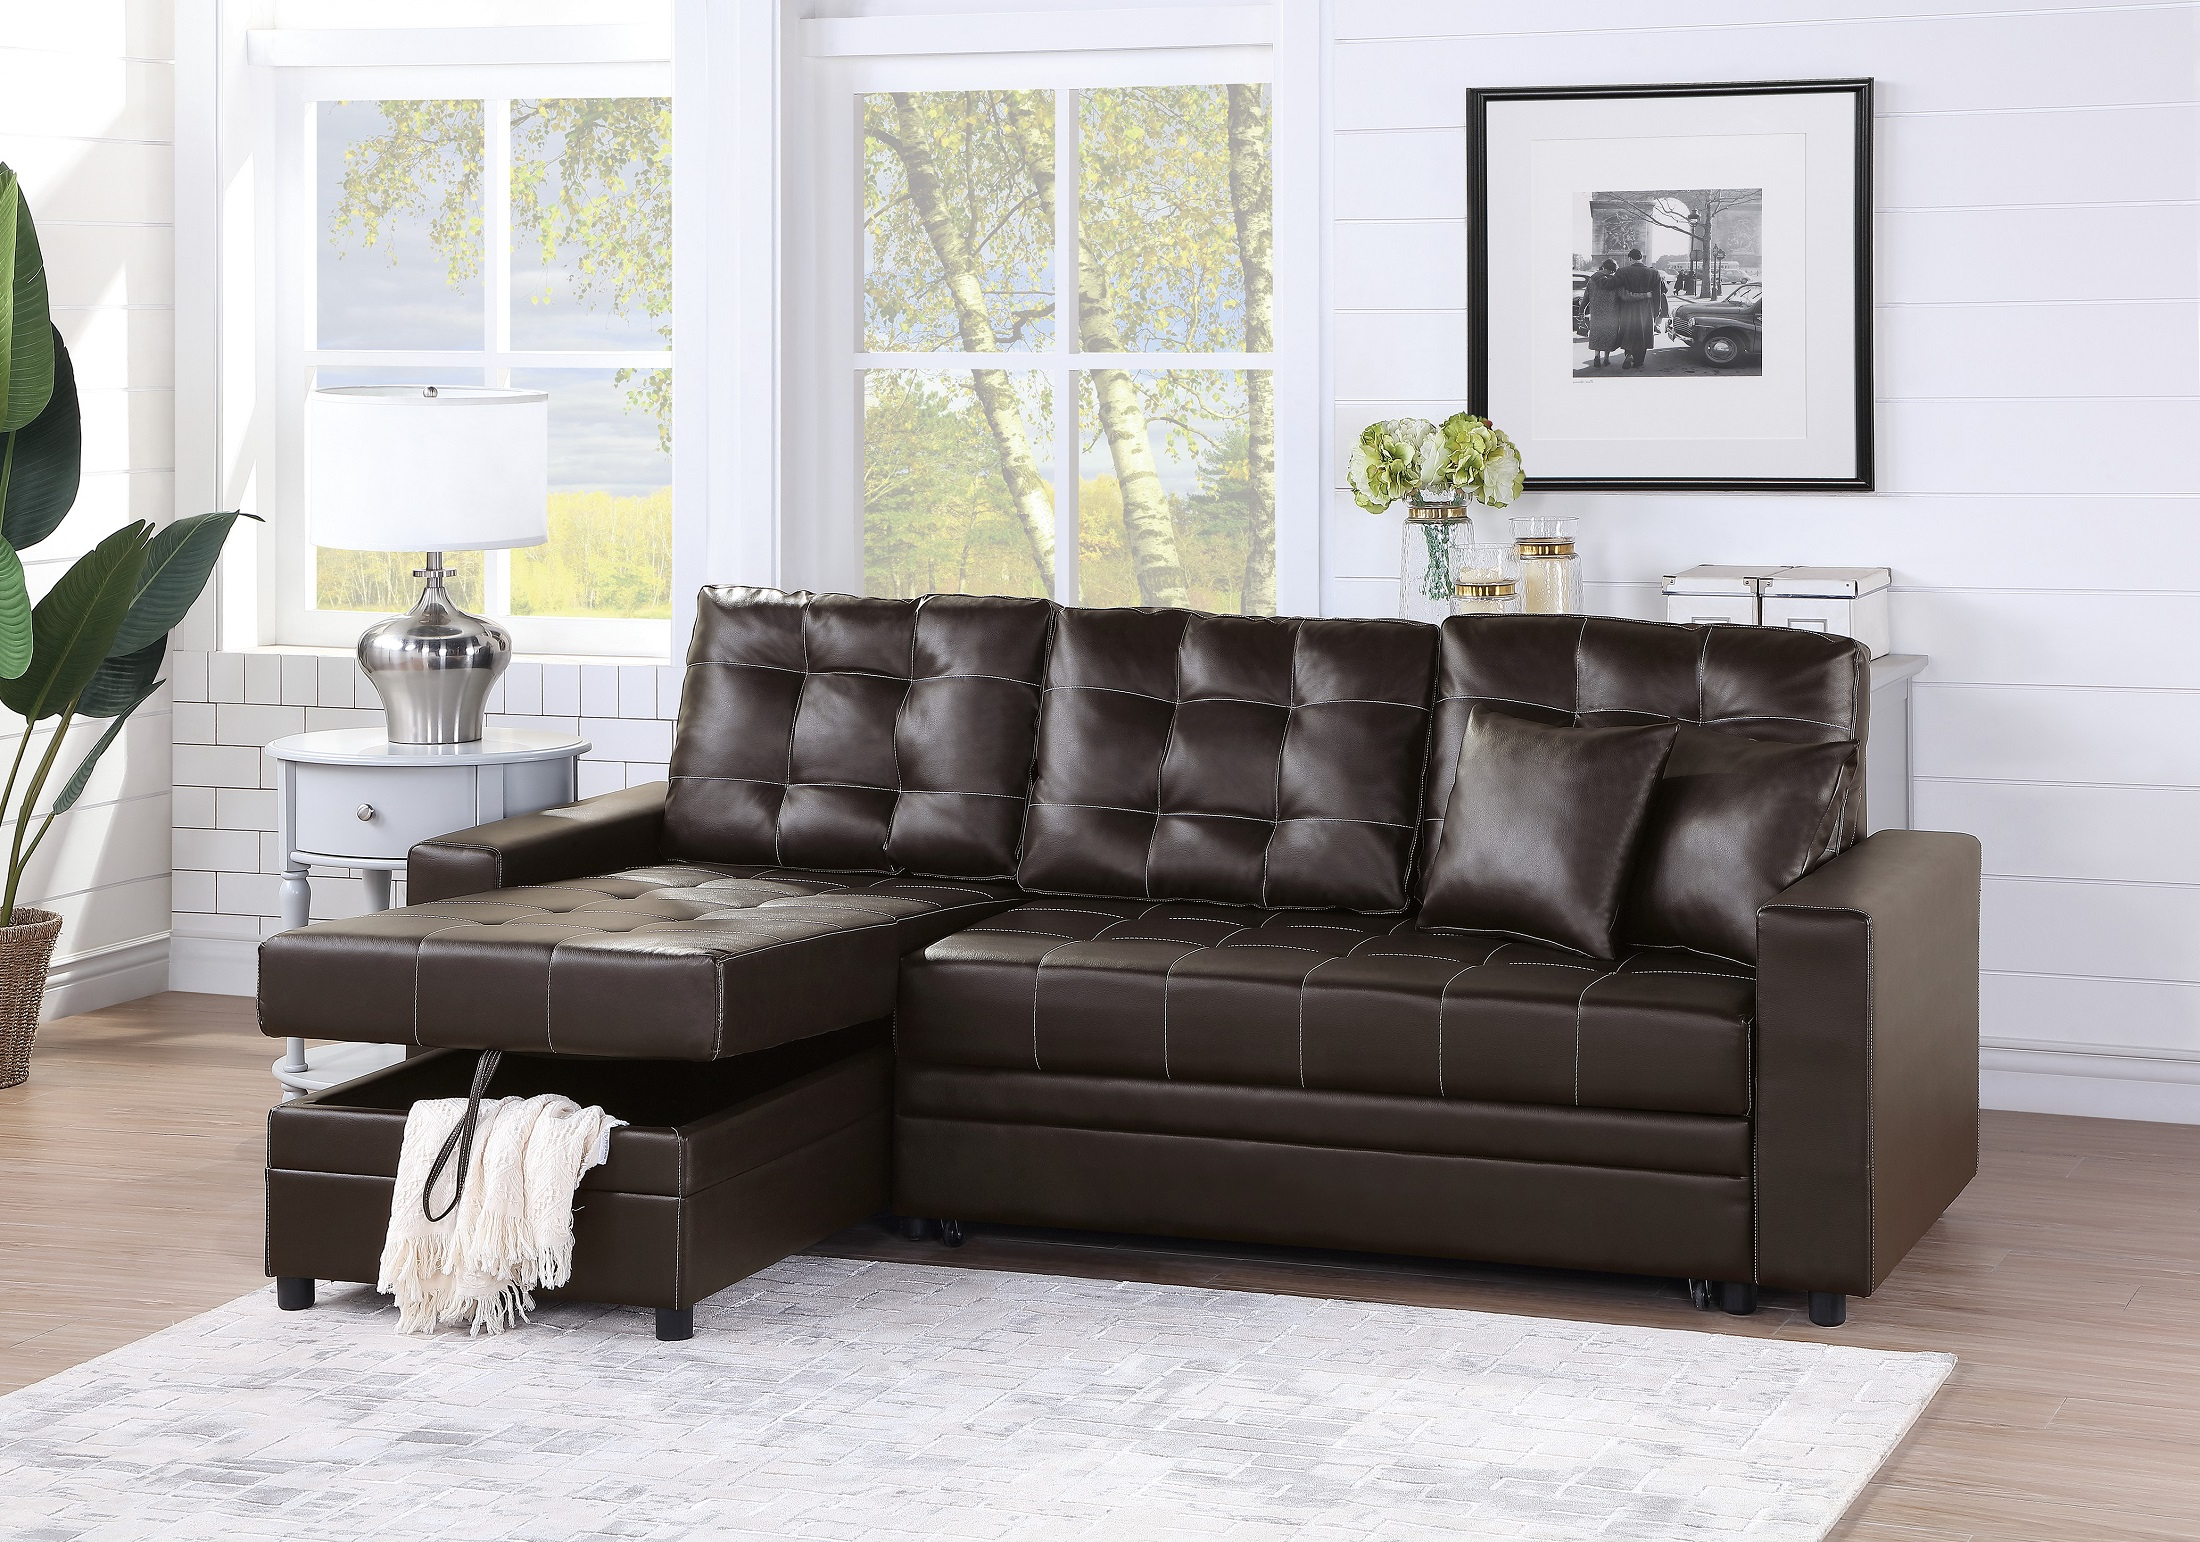 Convertible Sectional Sofa Set Living Room Furniture 2pc For Current 4pc Crowningshield Contemporary Chaise Sectional Sofas (View 1 of 20)